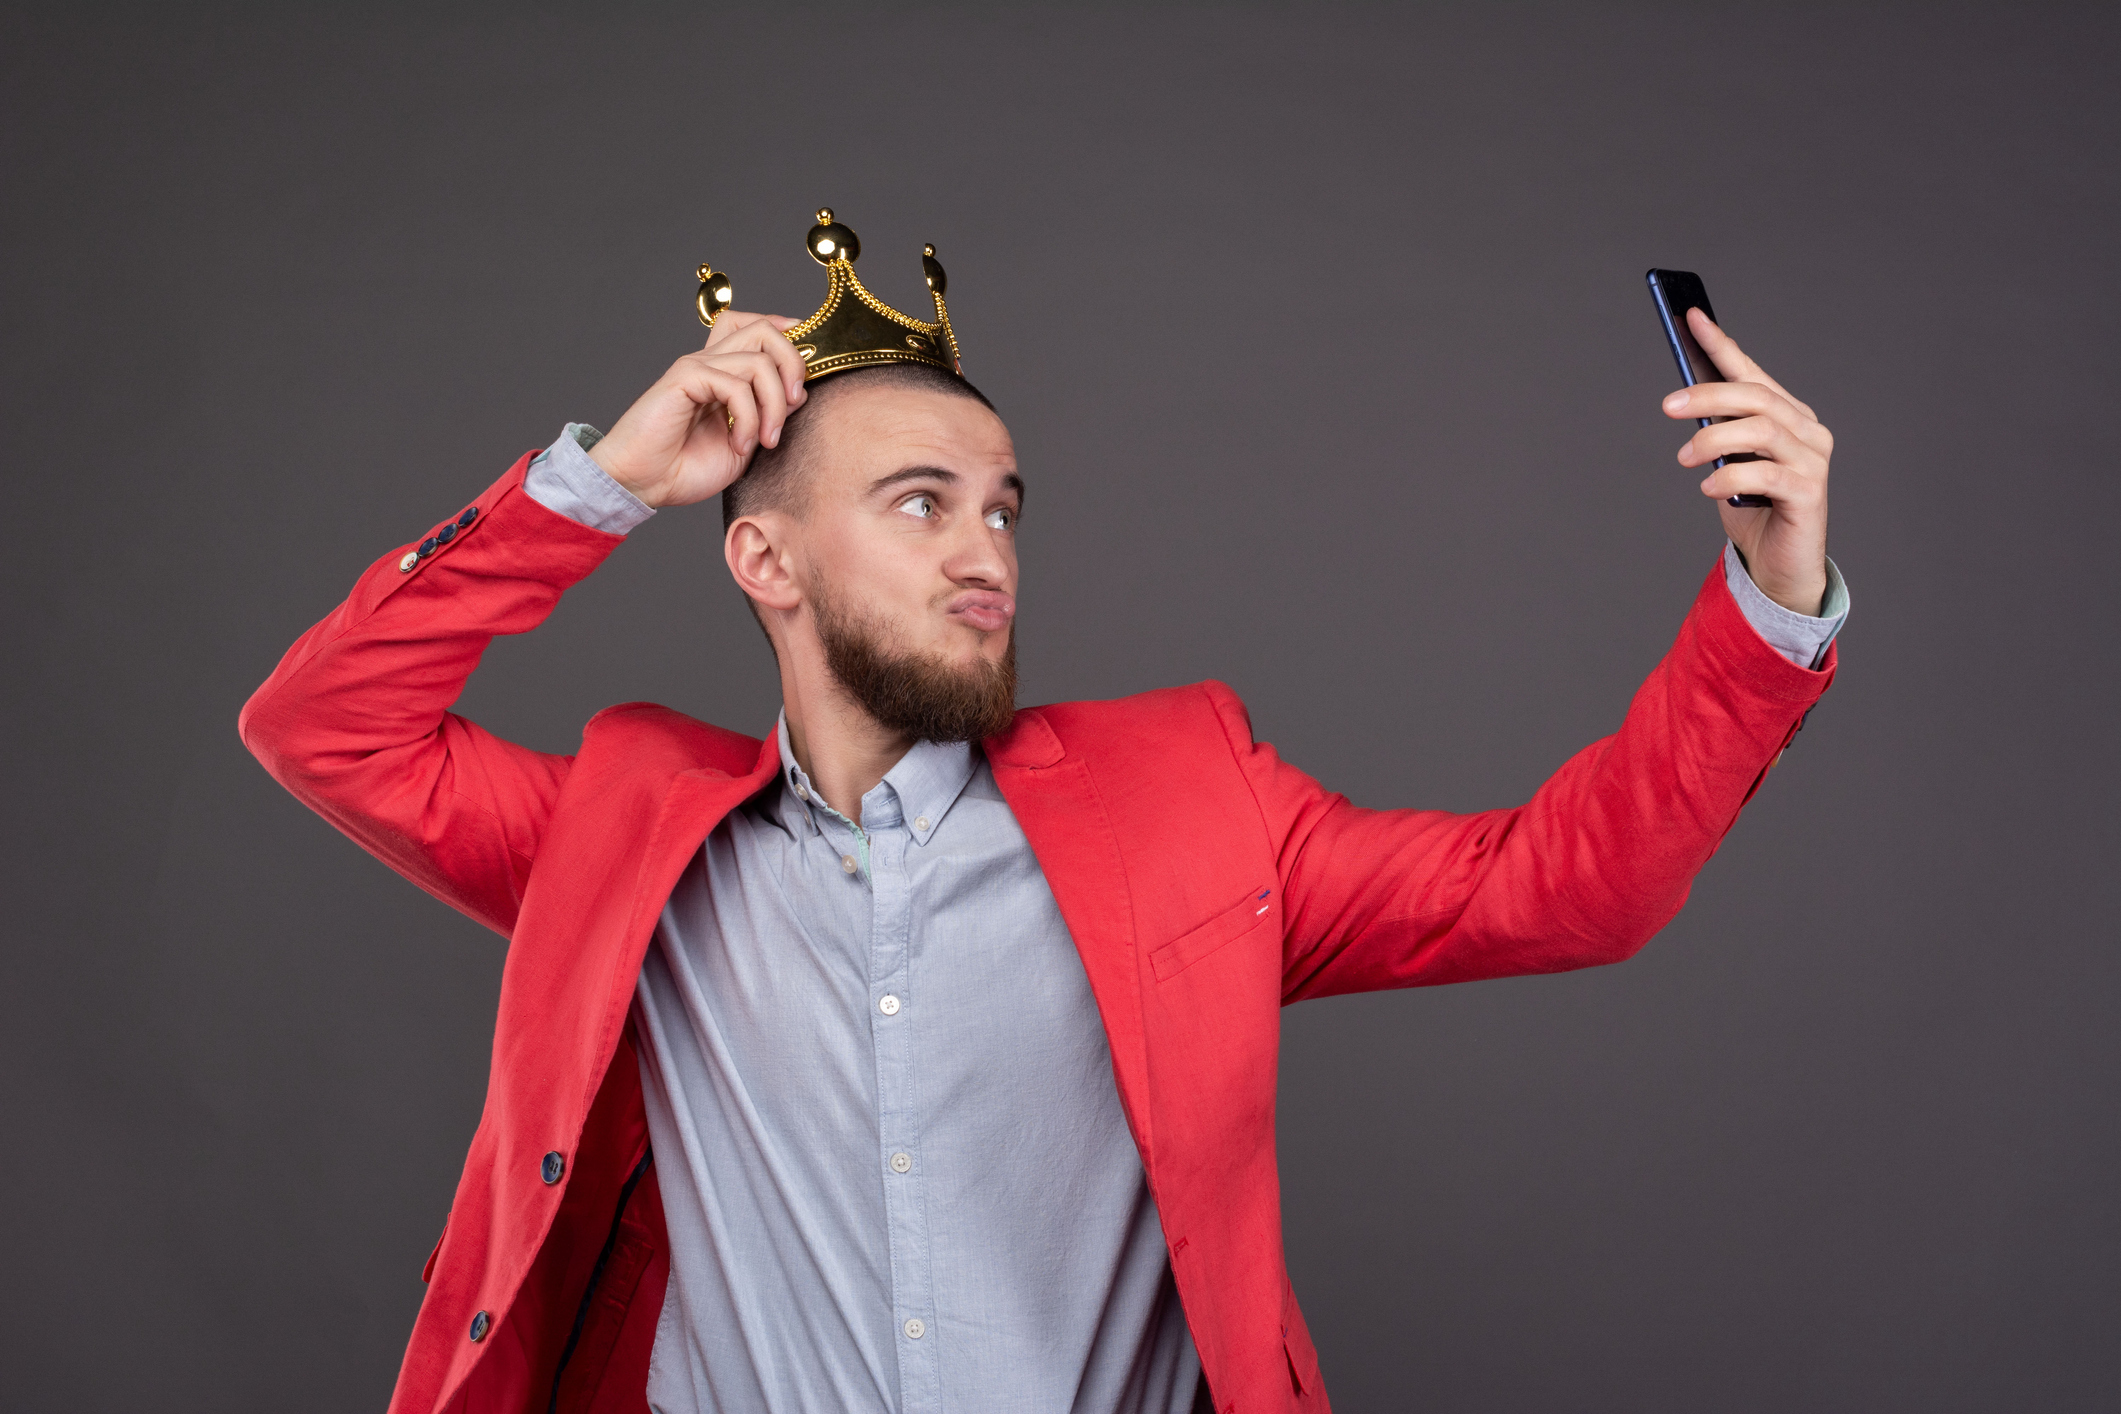 Young bearded handsome man in gold crown taking selfie looking at smartphone